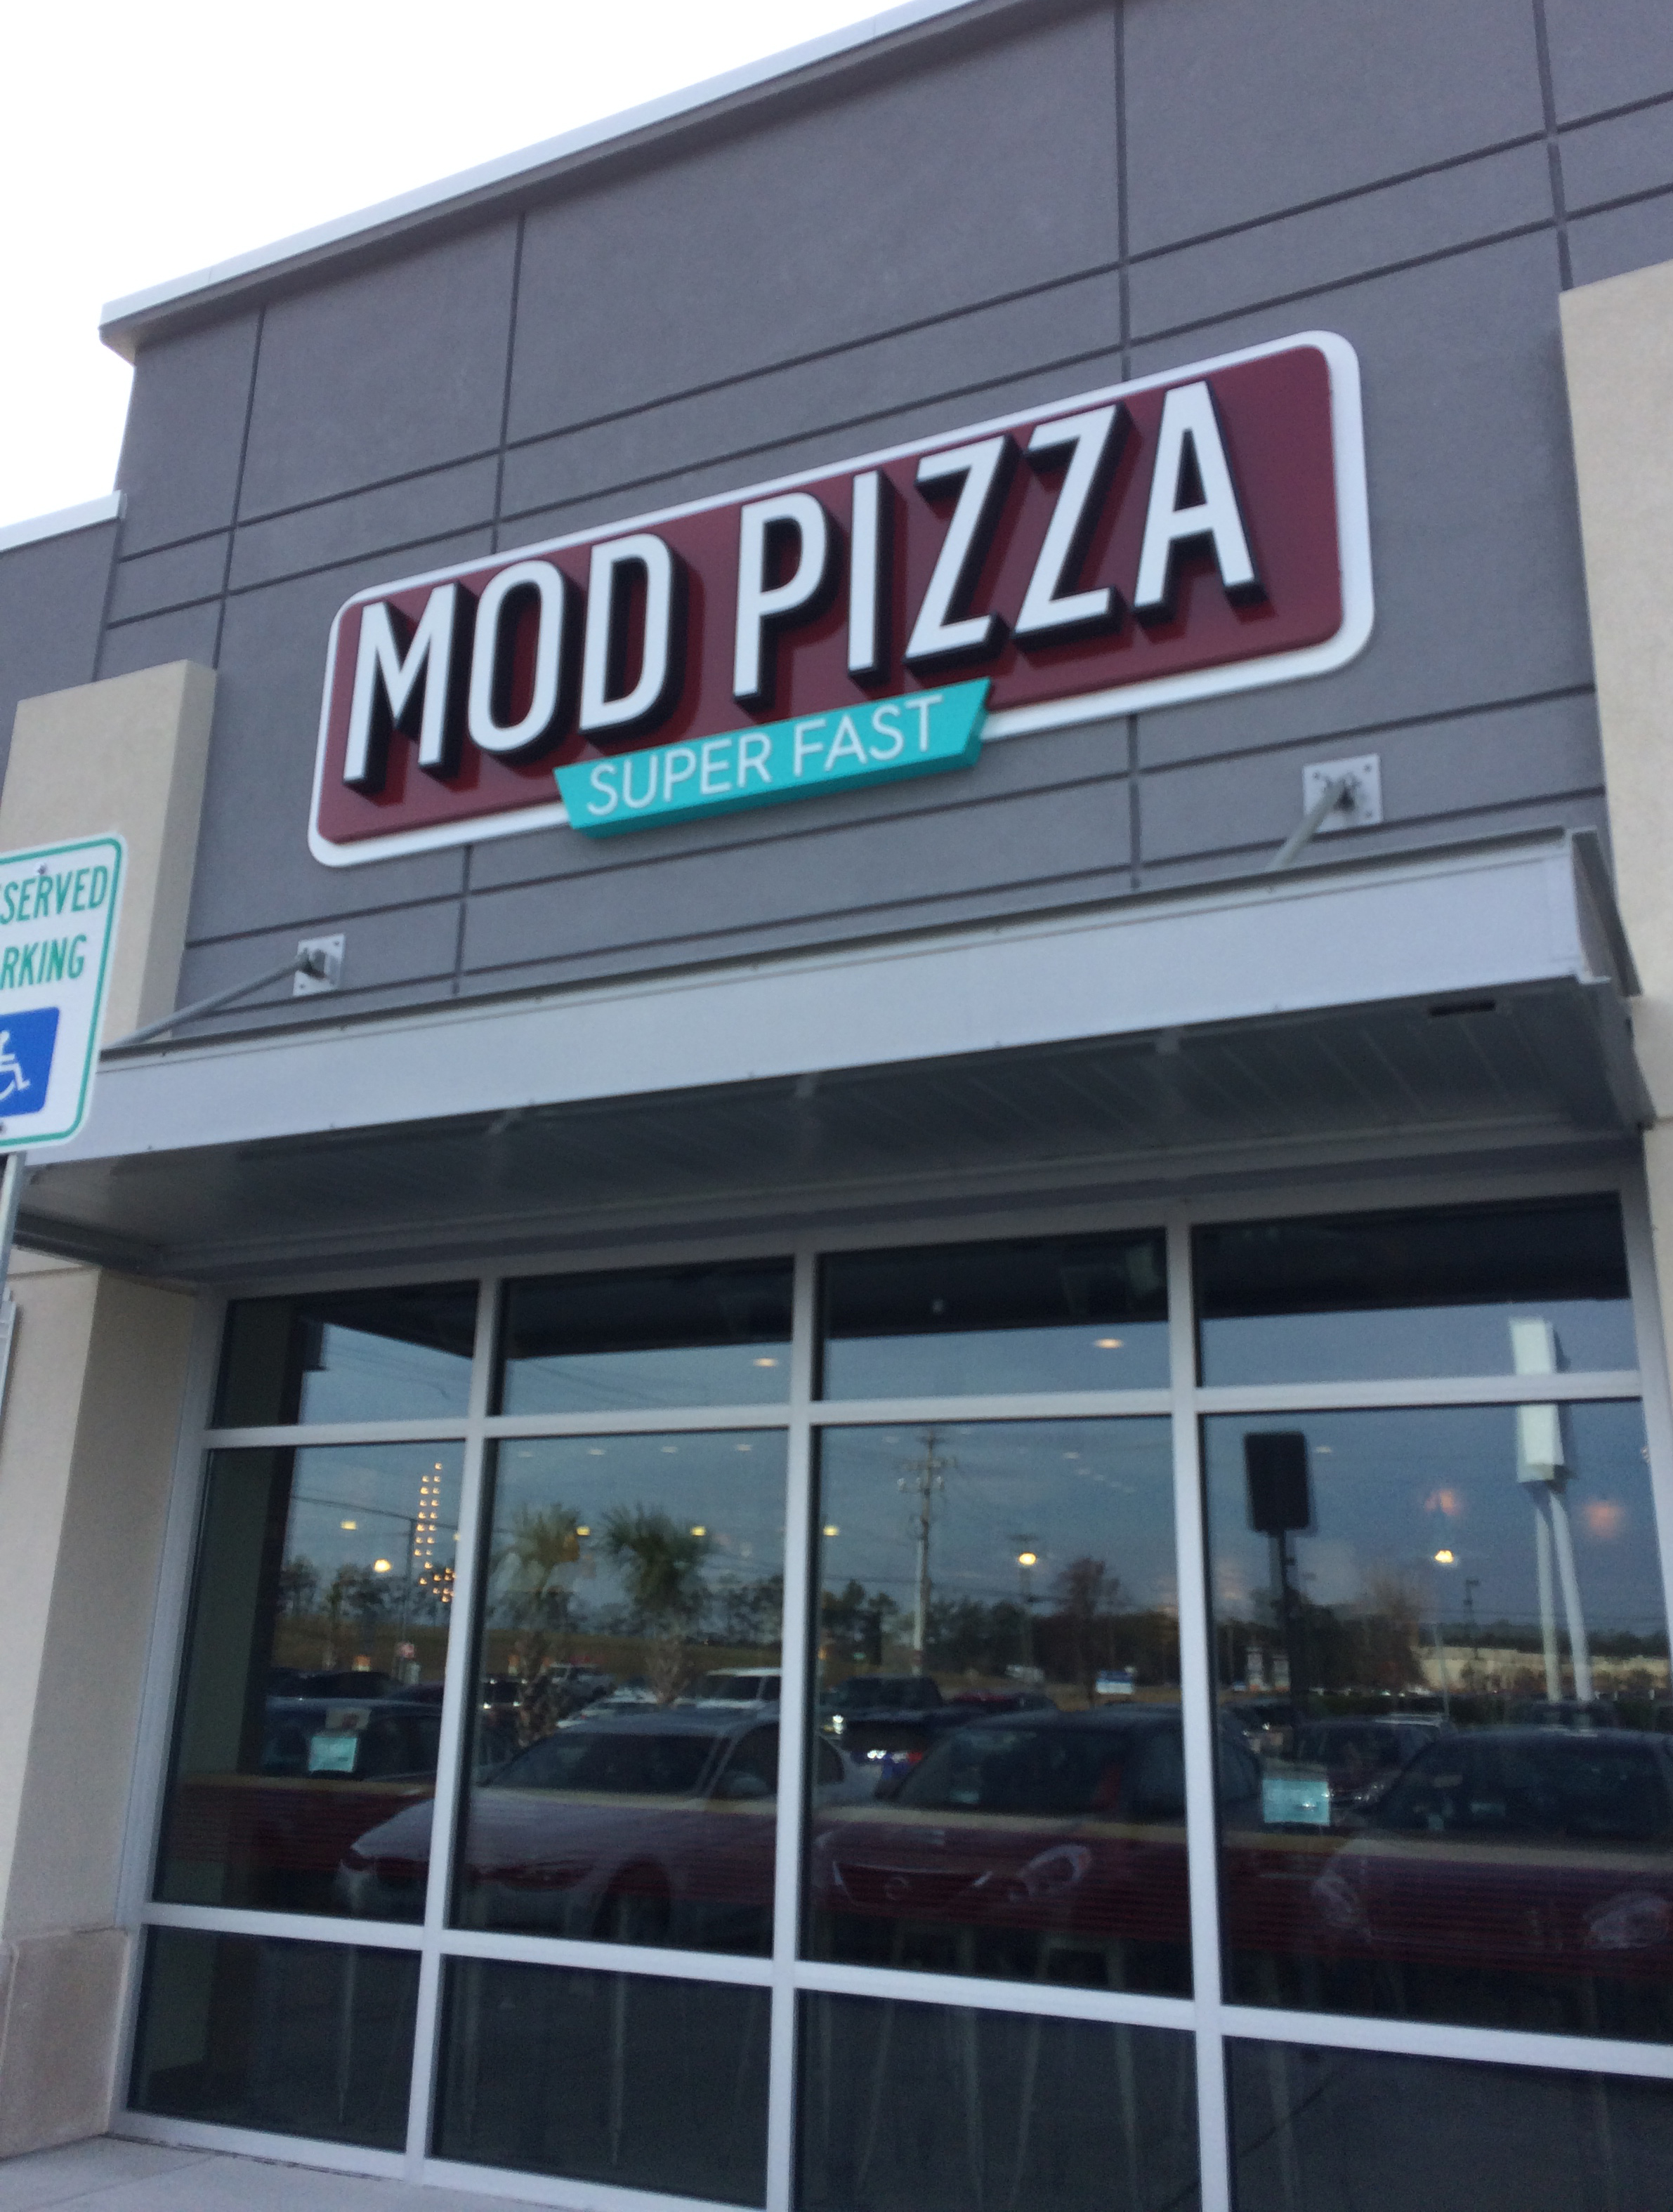 This was the MOD Pizza that Sidney and I visited in Myrtle Beach yesterday.